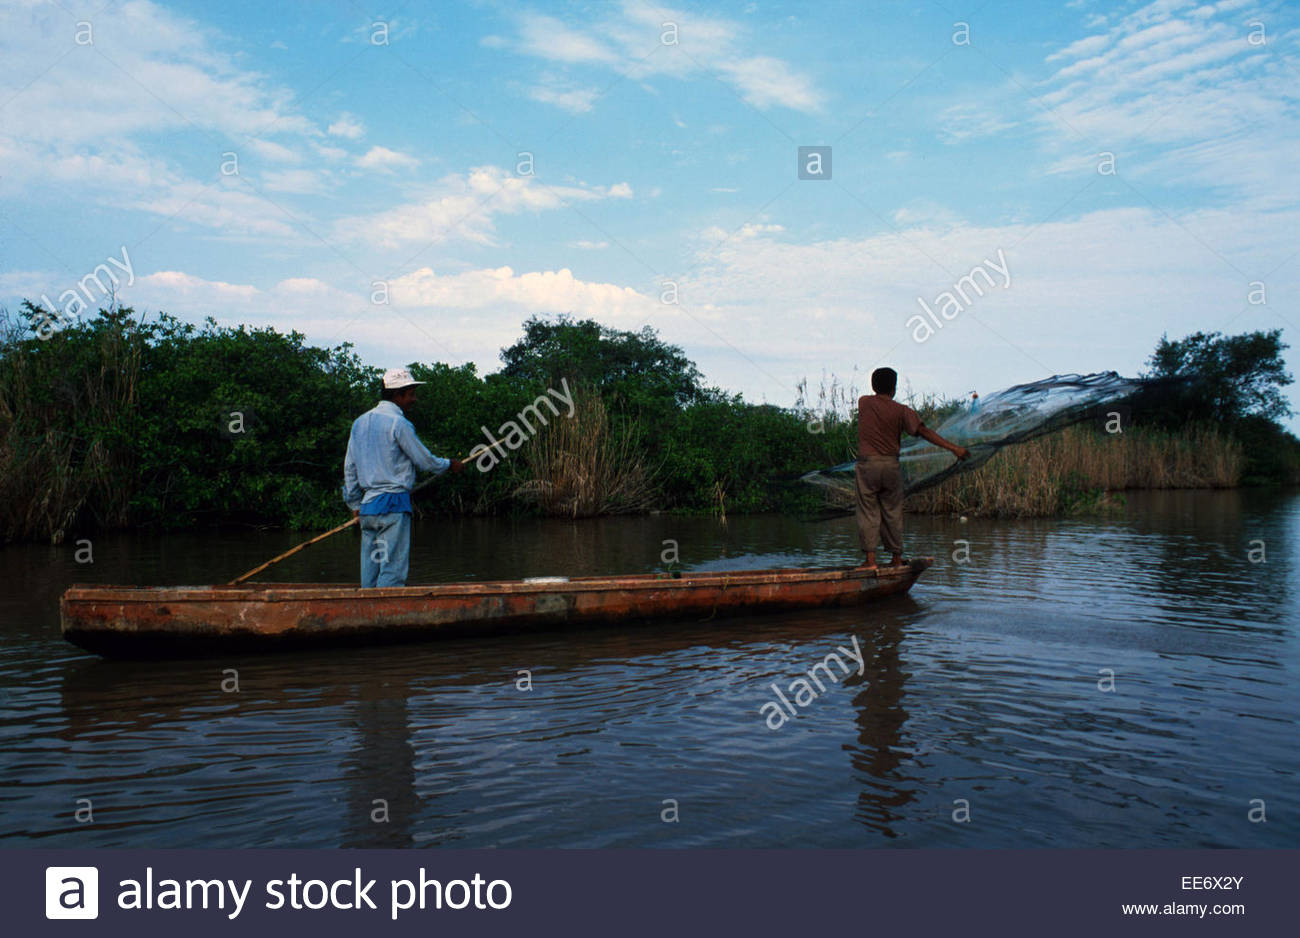 Mexcaltitan, fishermen fishing in the lagoon - Stock Image